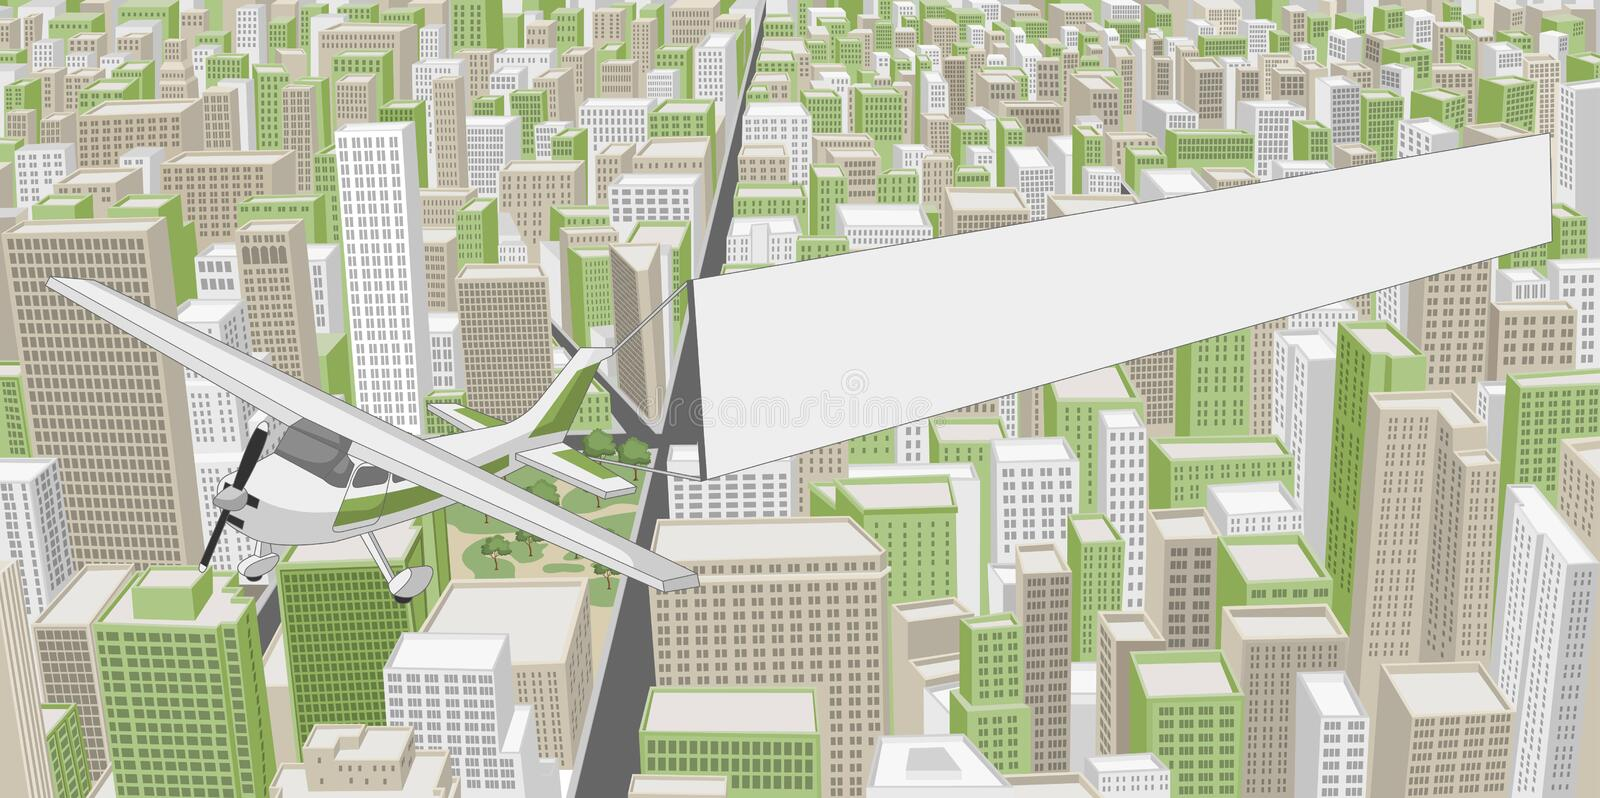 Big city with buildings royalty free illustration